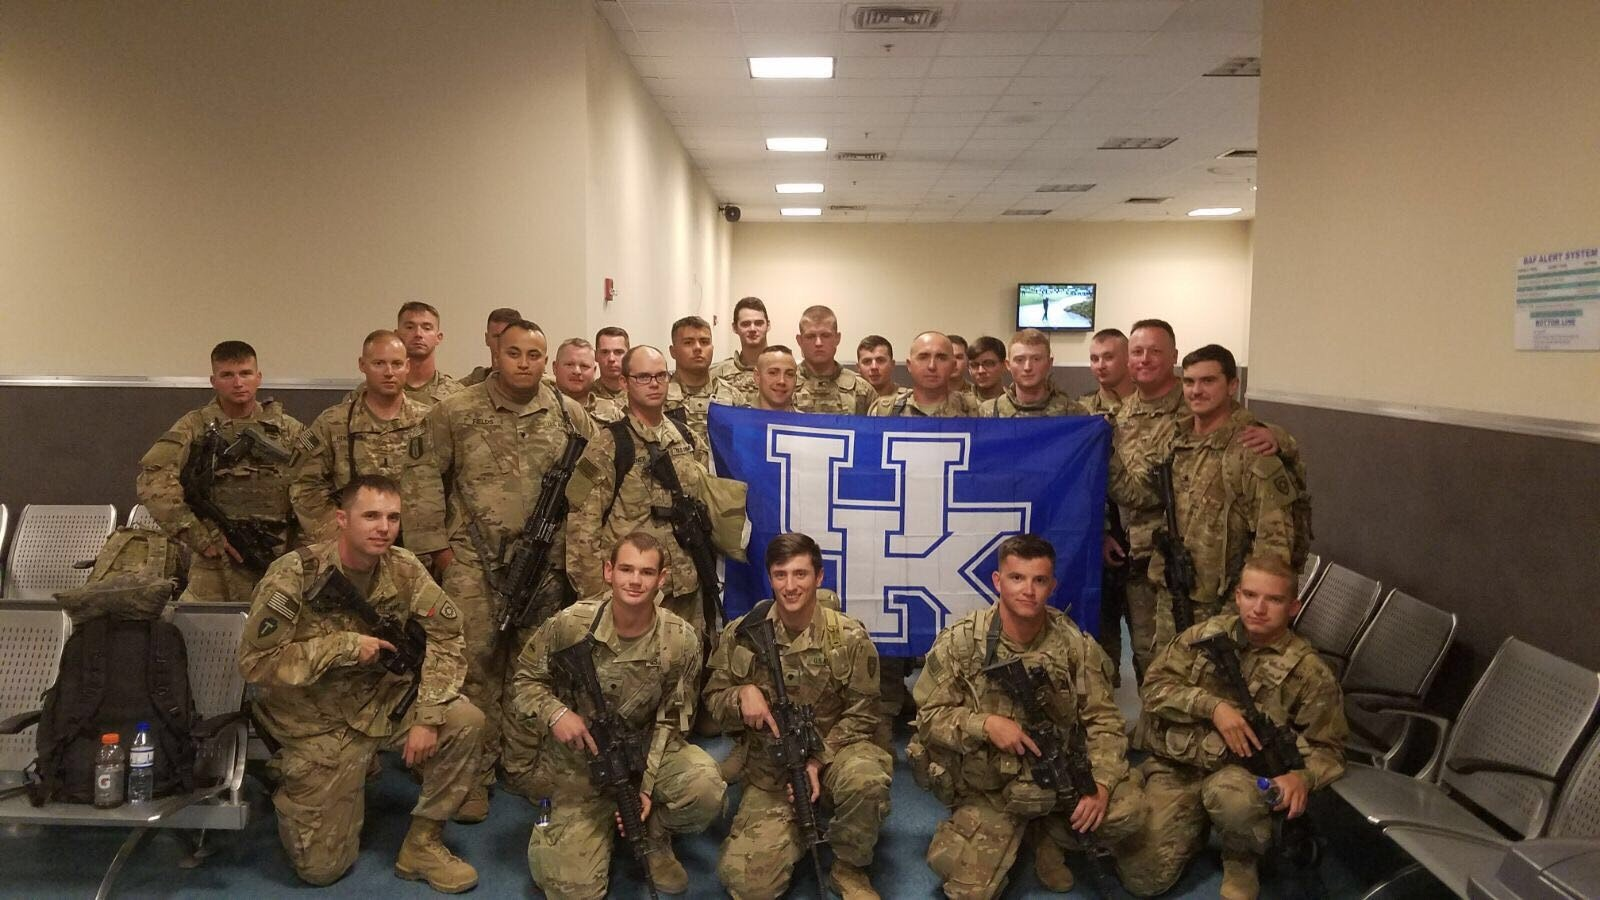 The Kentucky Army National Guard 207th Engineer Company based out of Hazard has this photo taken at 2 a.m. after returning from Kuwait to Afghanistan recently. The UK flag was sent in a care package by a troop member's family.